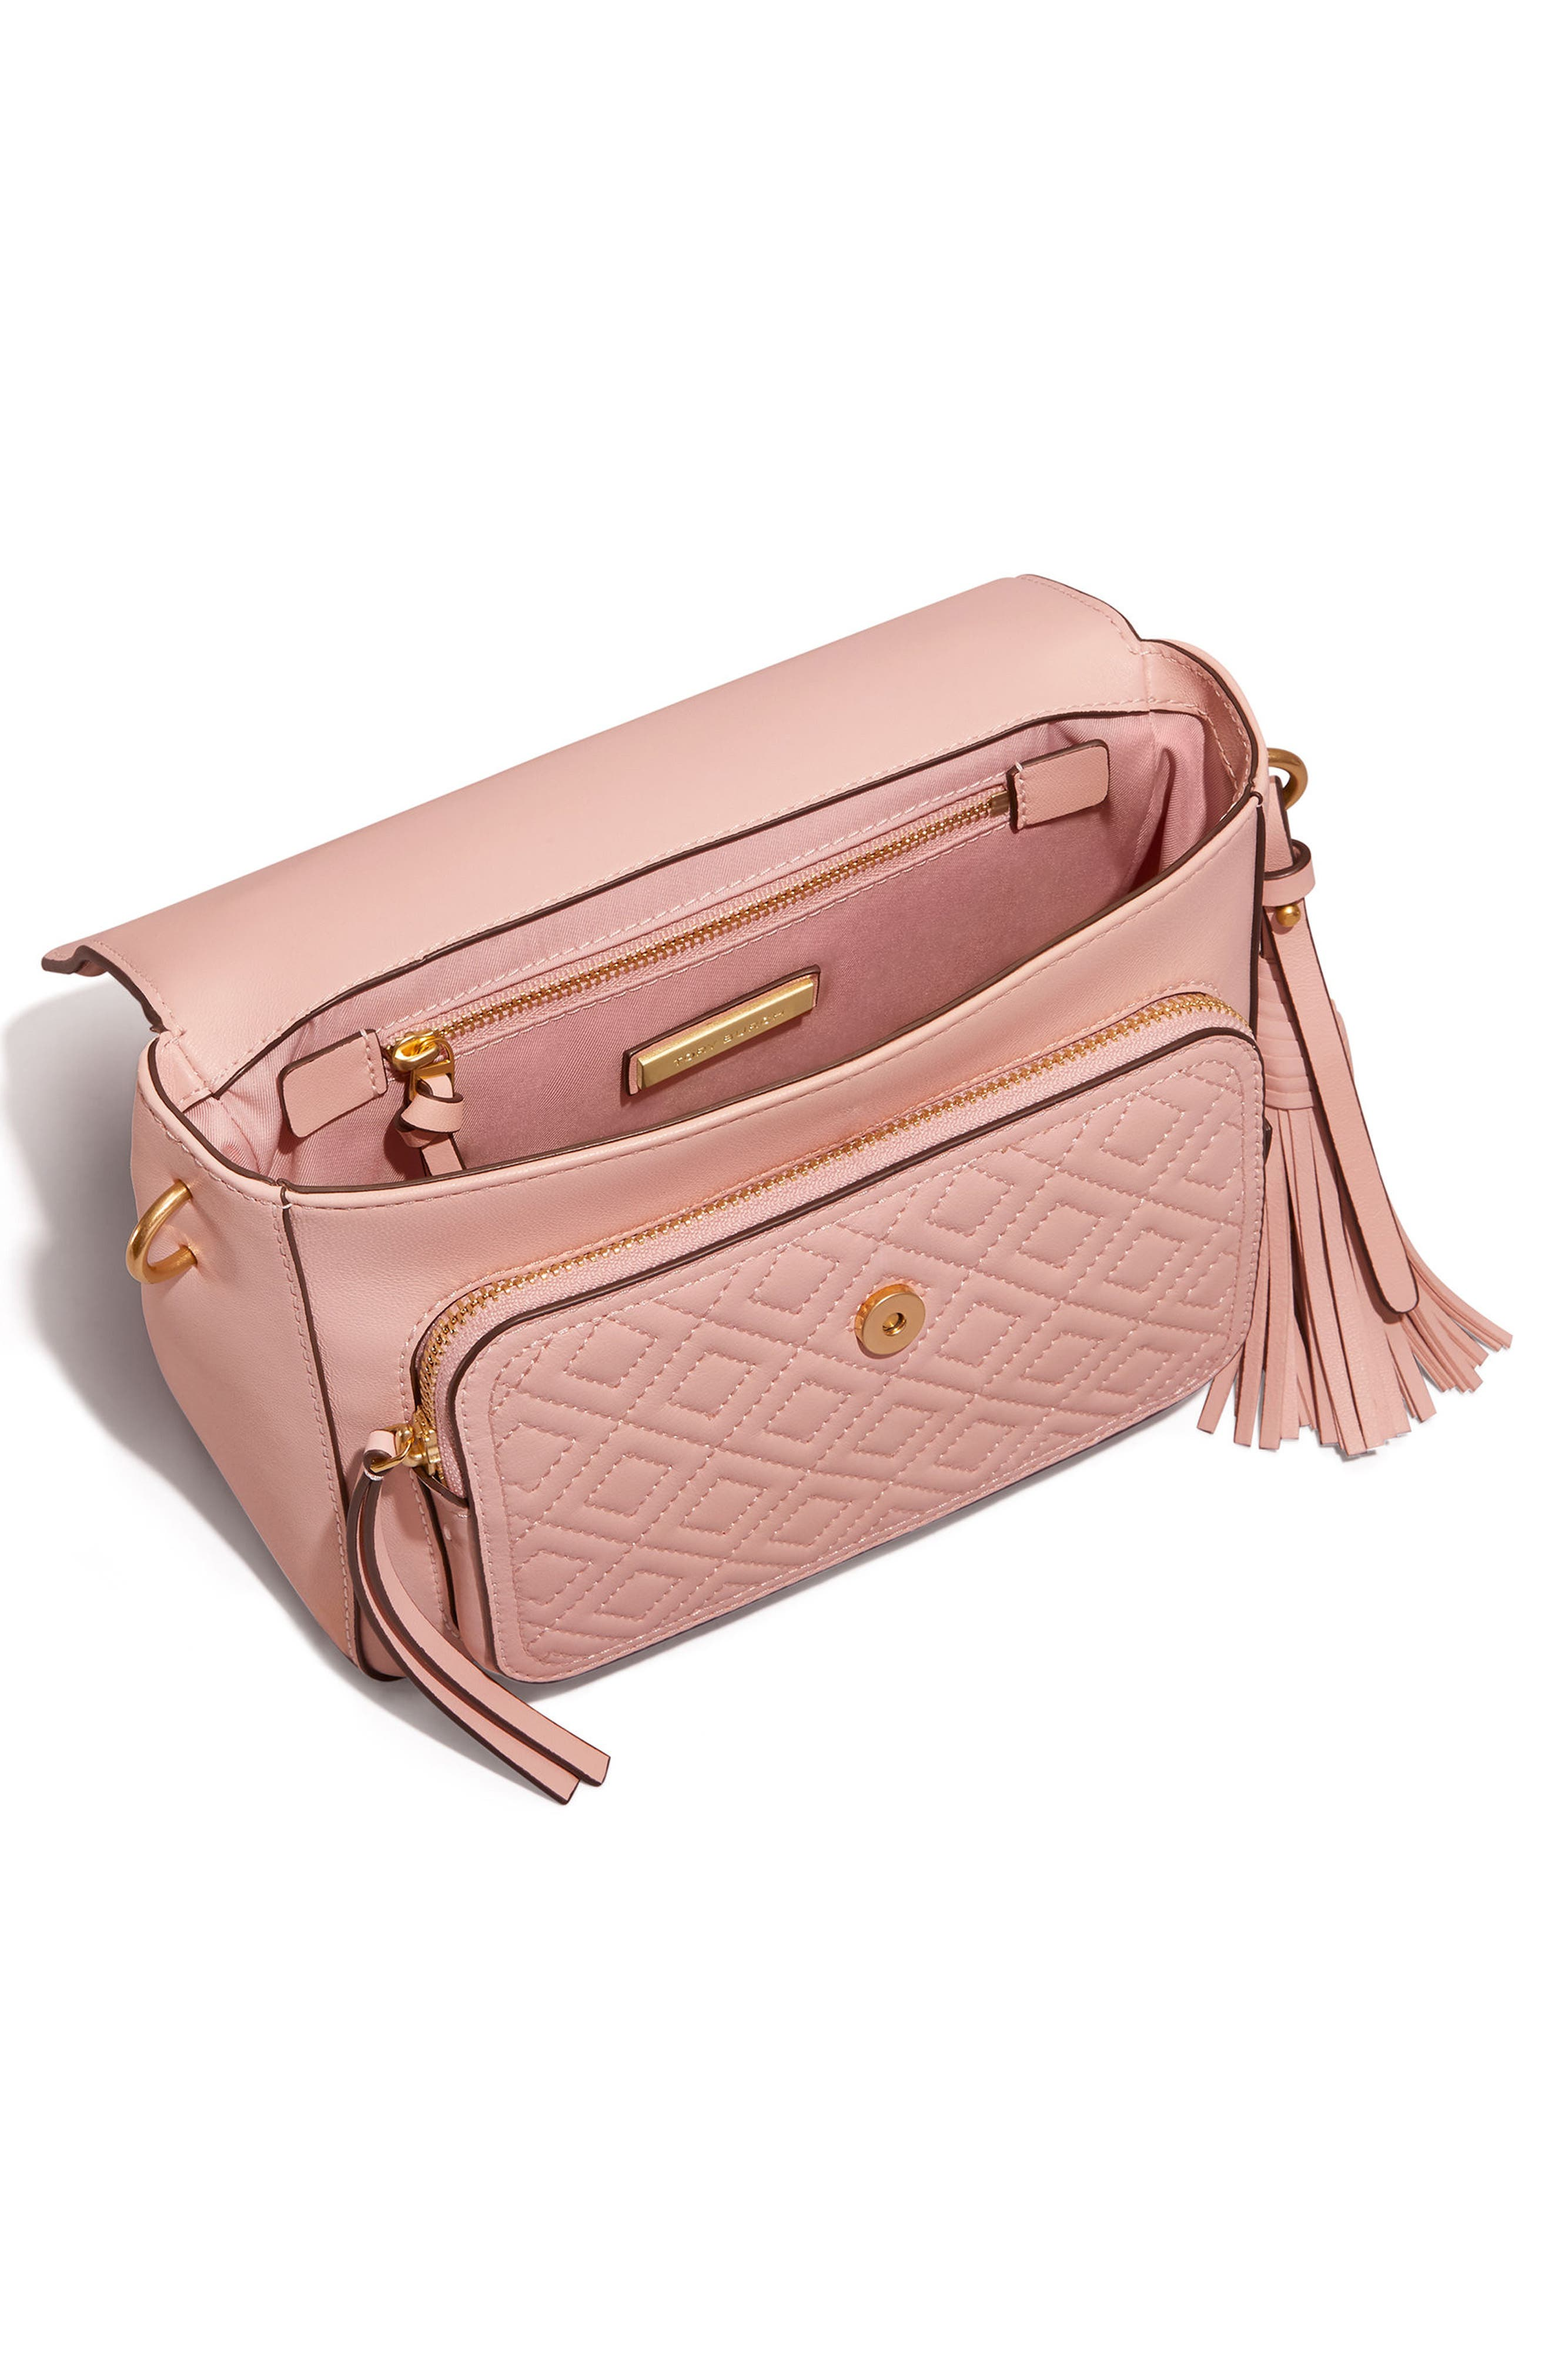 Fleming Quilted Leather Top Handle Satchel,                             Alternate thumbnail 2, color,                             SHELL PINK